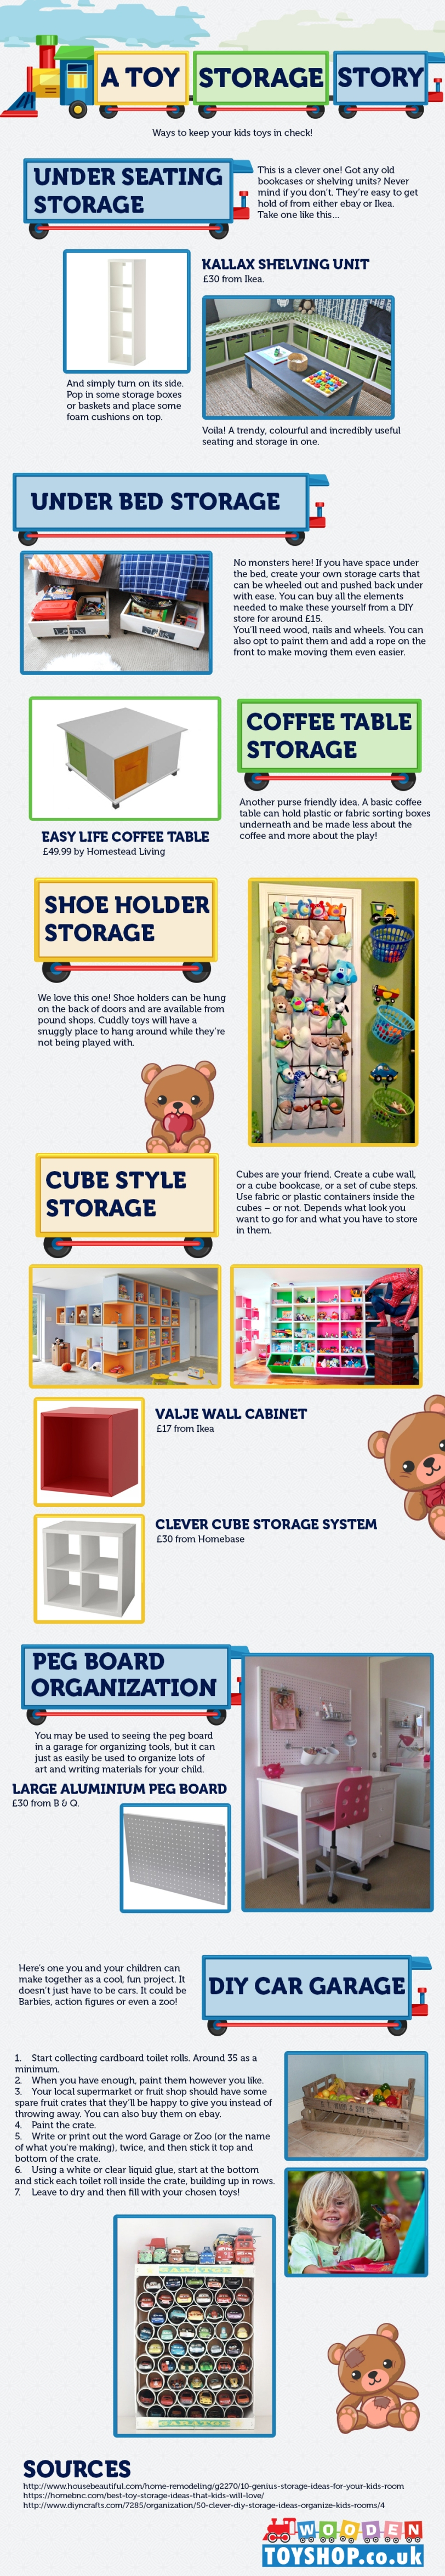 A Toy Storage Story by WoodenToyShop.co.uk